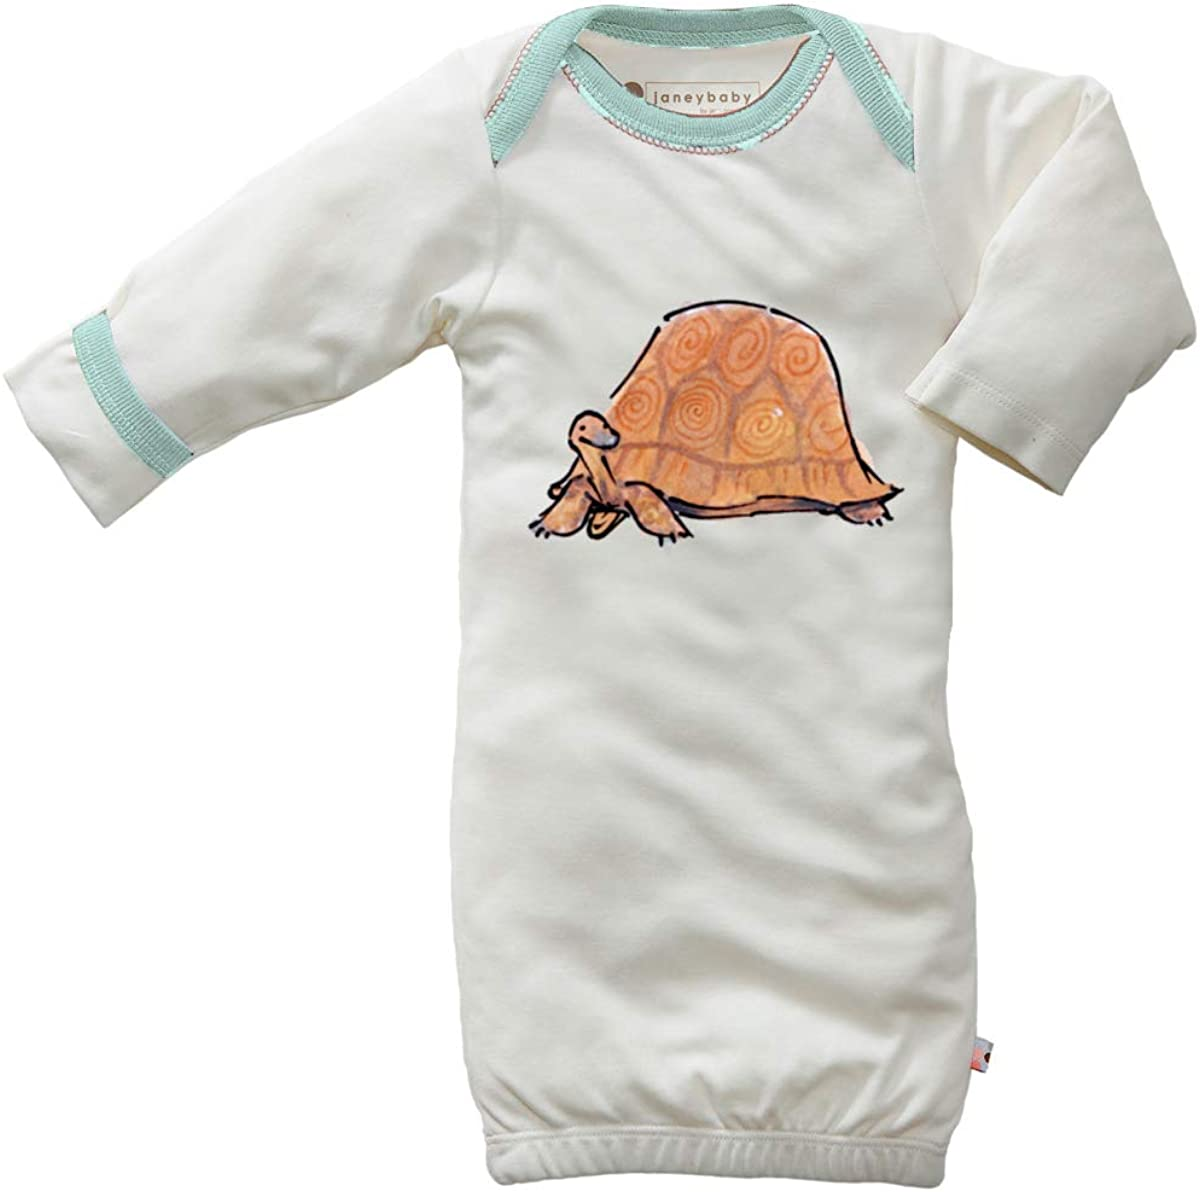 Babysoy Jane Goodall Animal Long Sleeve Newborn Gown/Bundler Infant Sleep Sacs